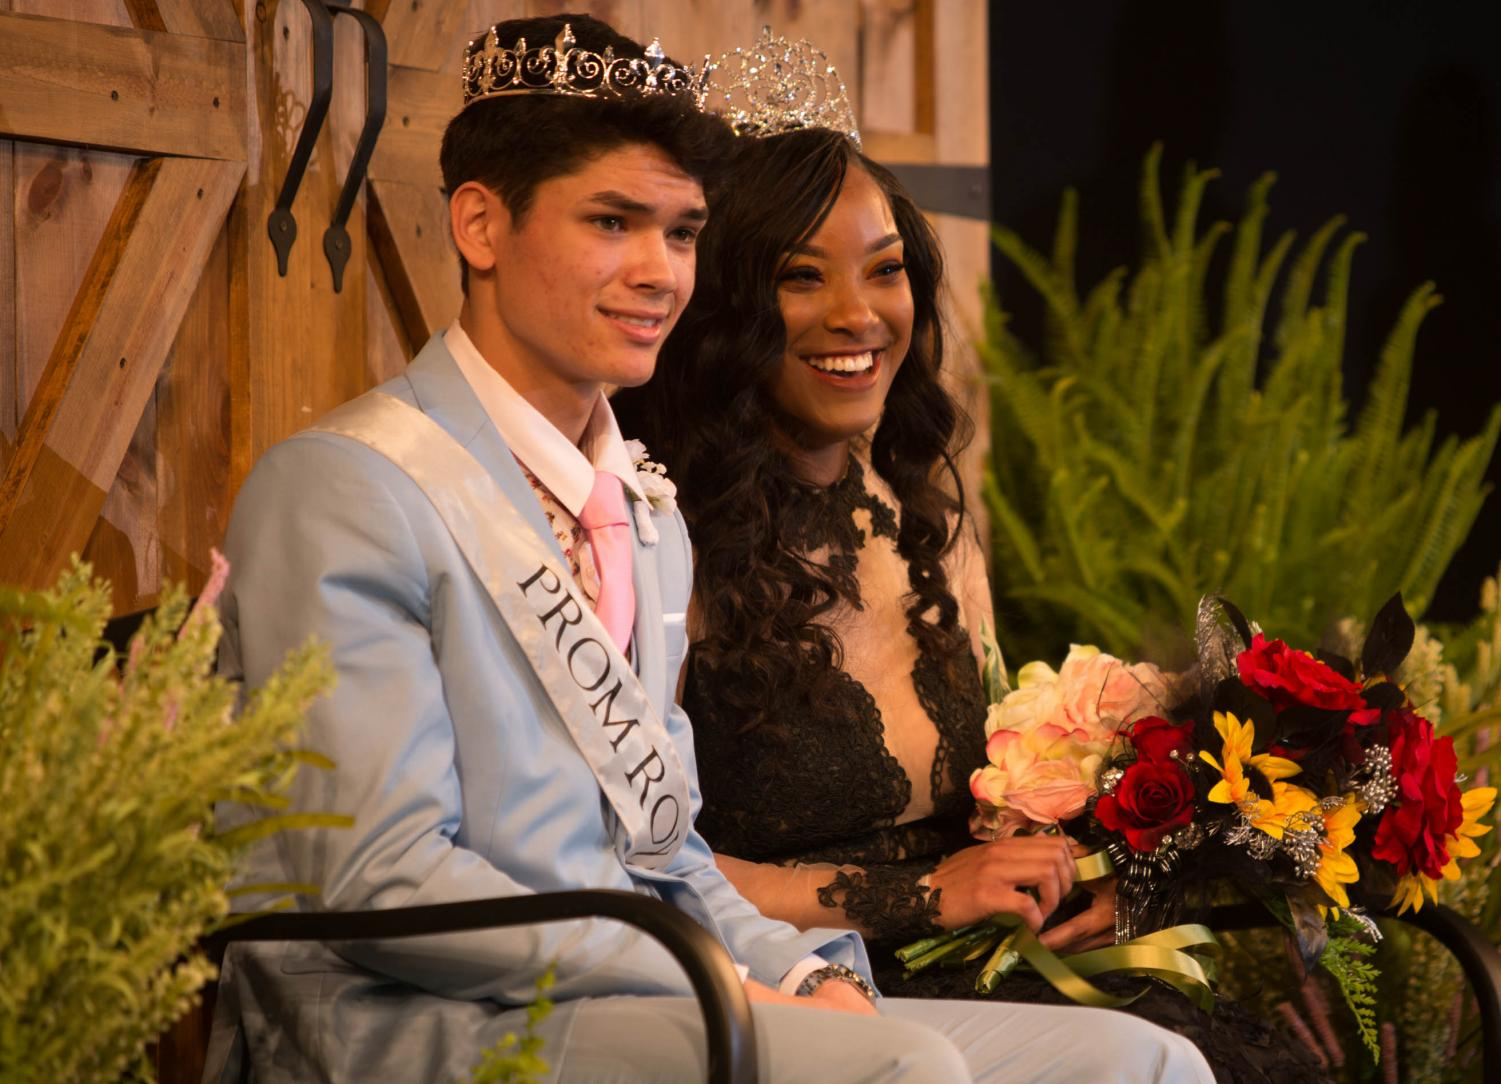 Nick Sursa, '19 and JaMeziah Lesure, '19 bask in royalty on the Schweinfurth stage as they are awarded Prom King and Queen of last year's prom. Sursa and Lesure won the award on Saturday April 14, 2018.